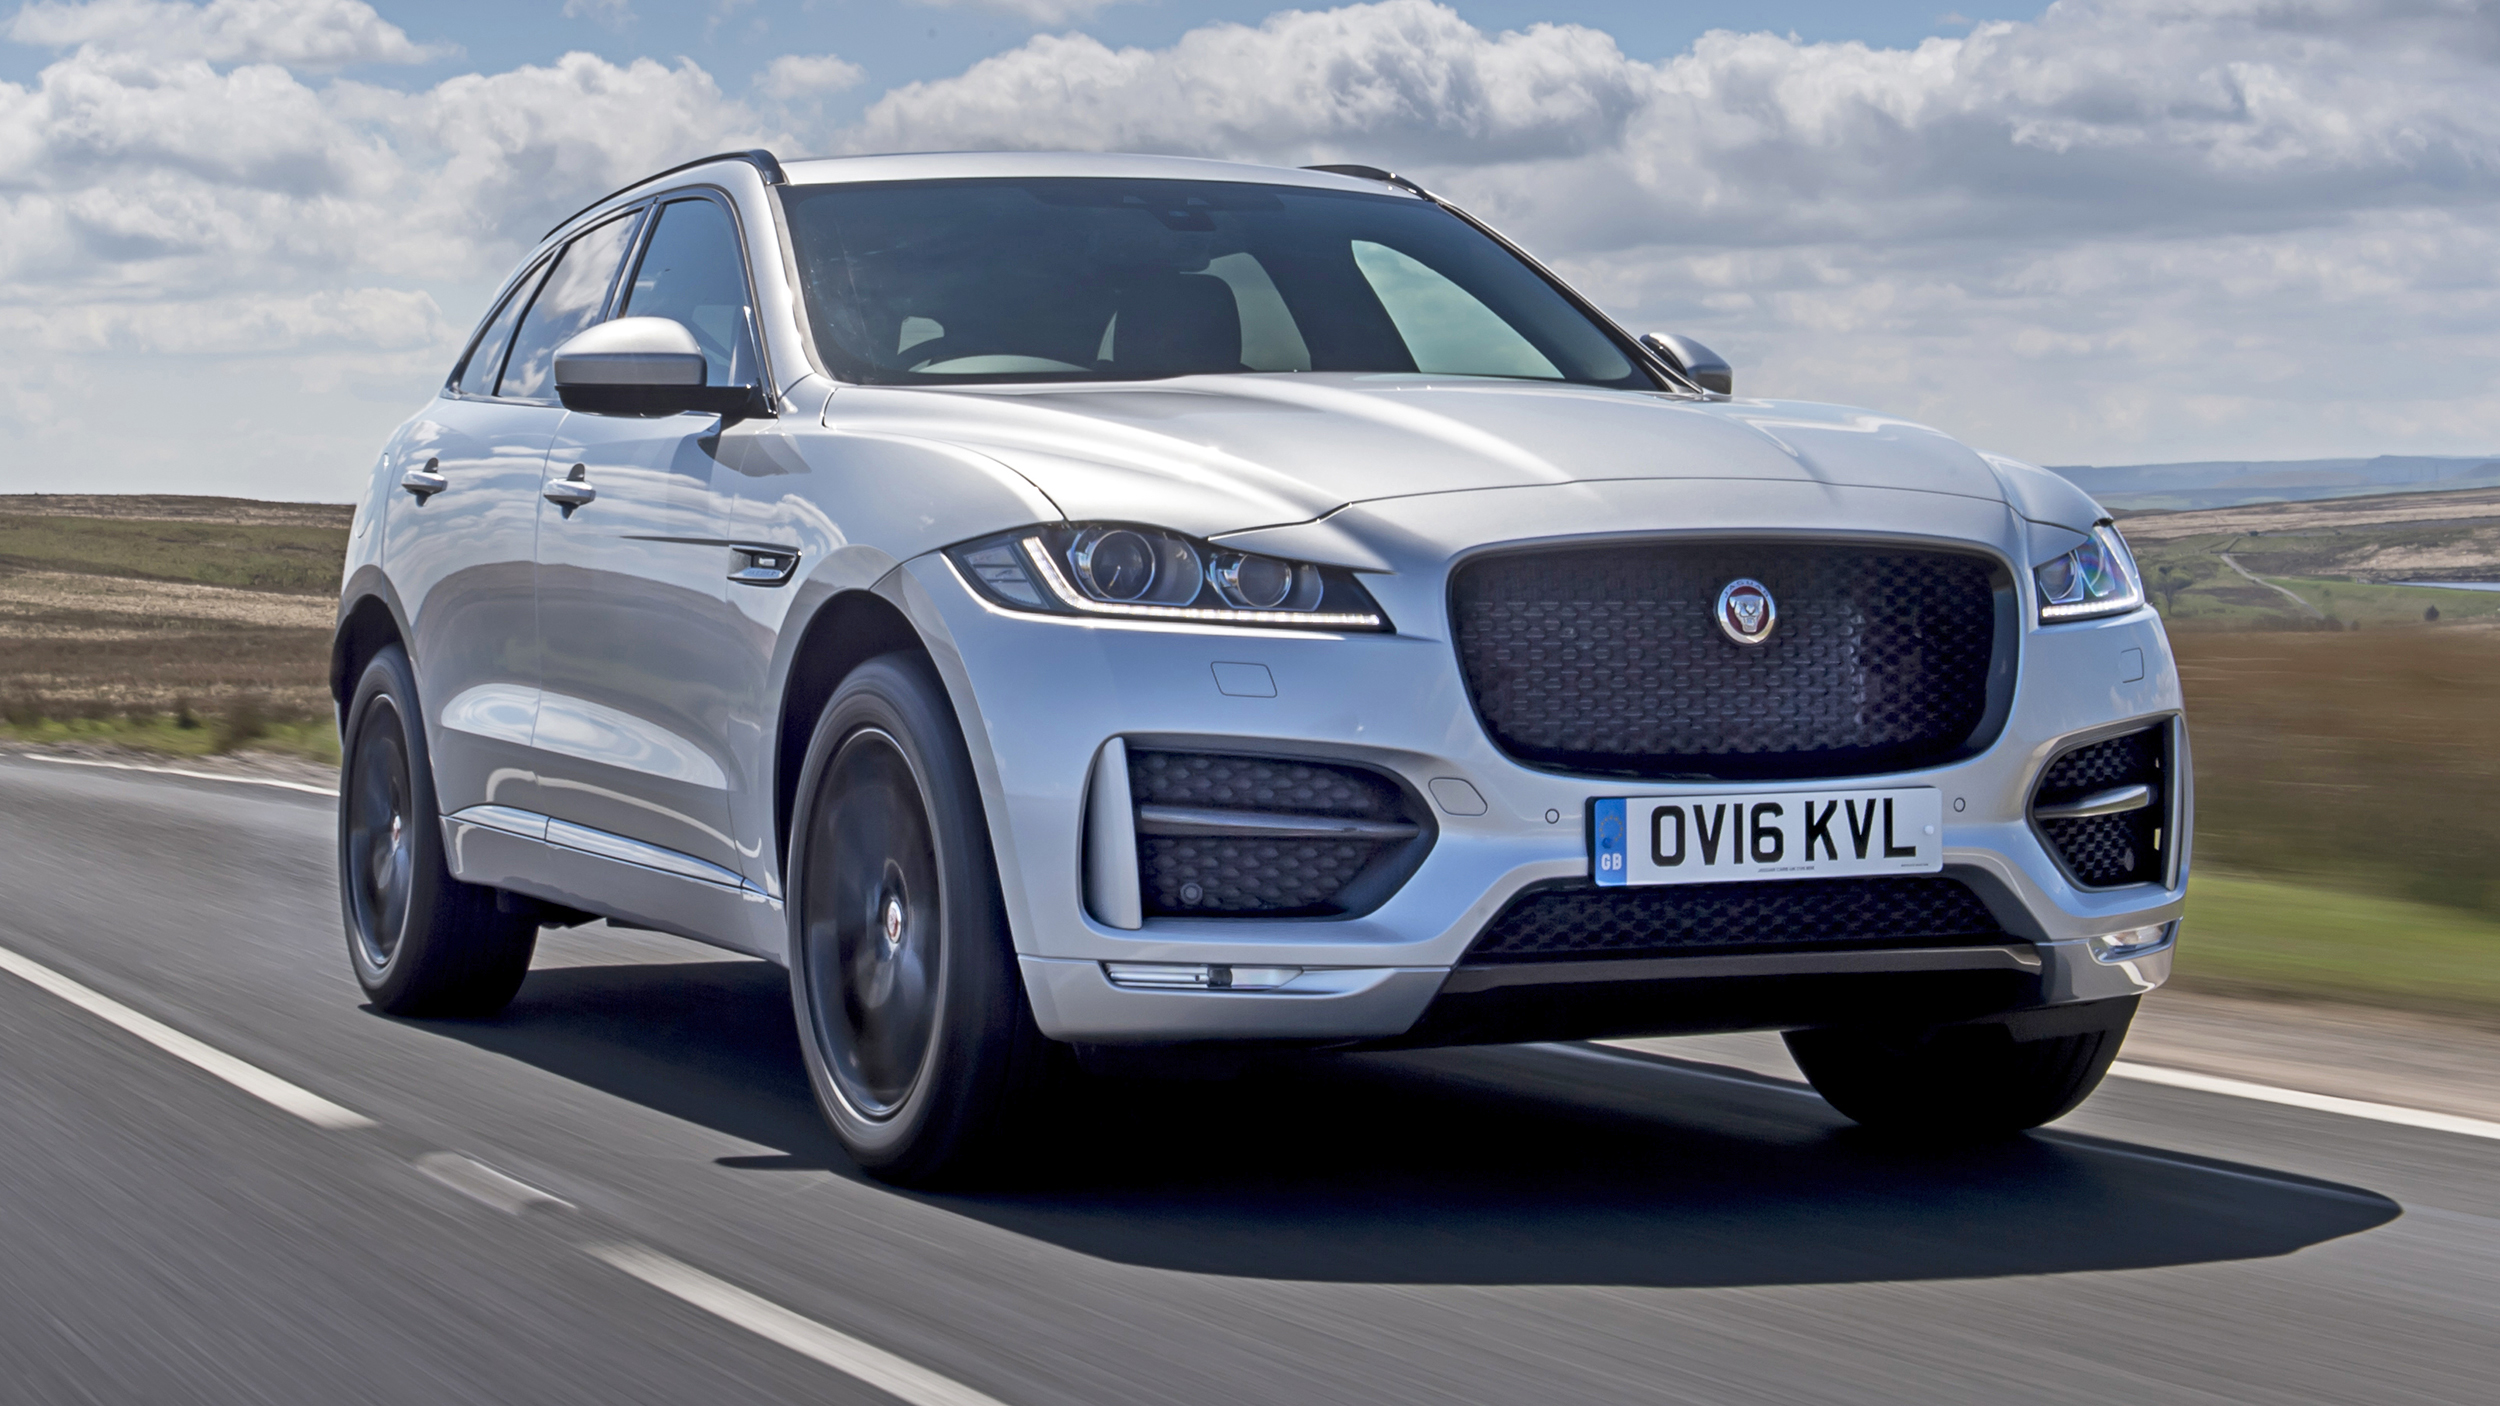 f pace 017